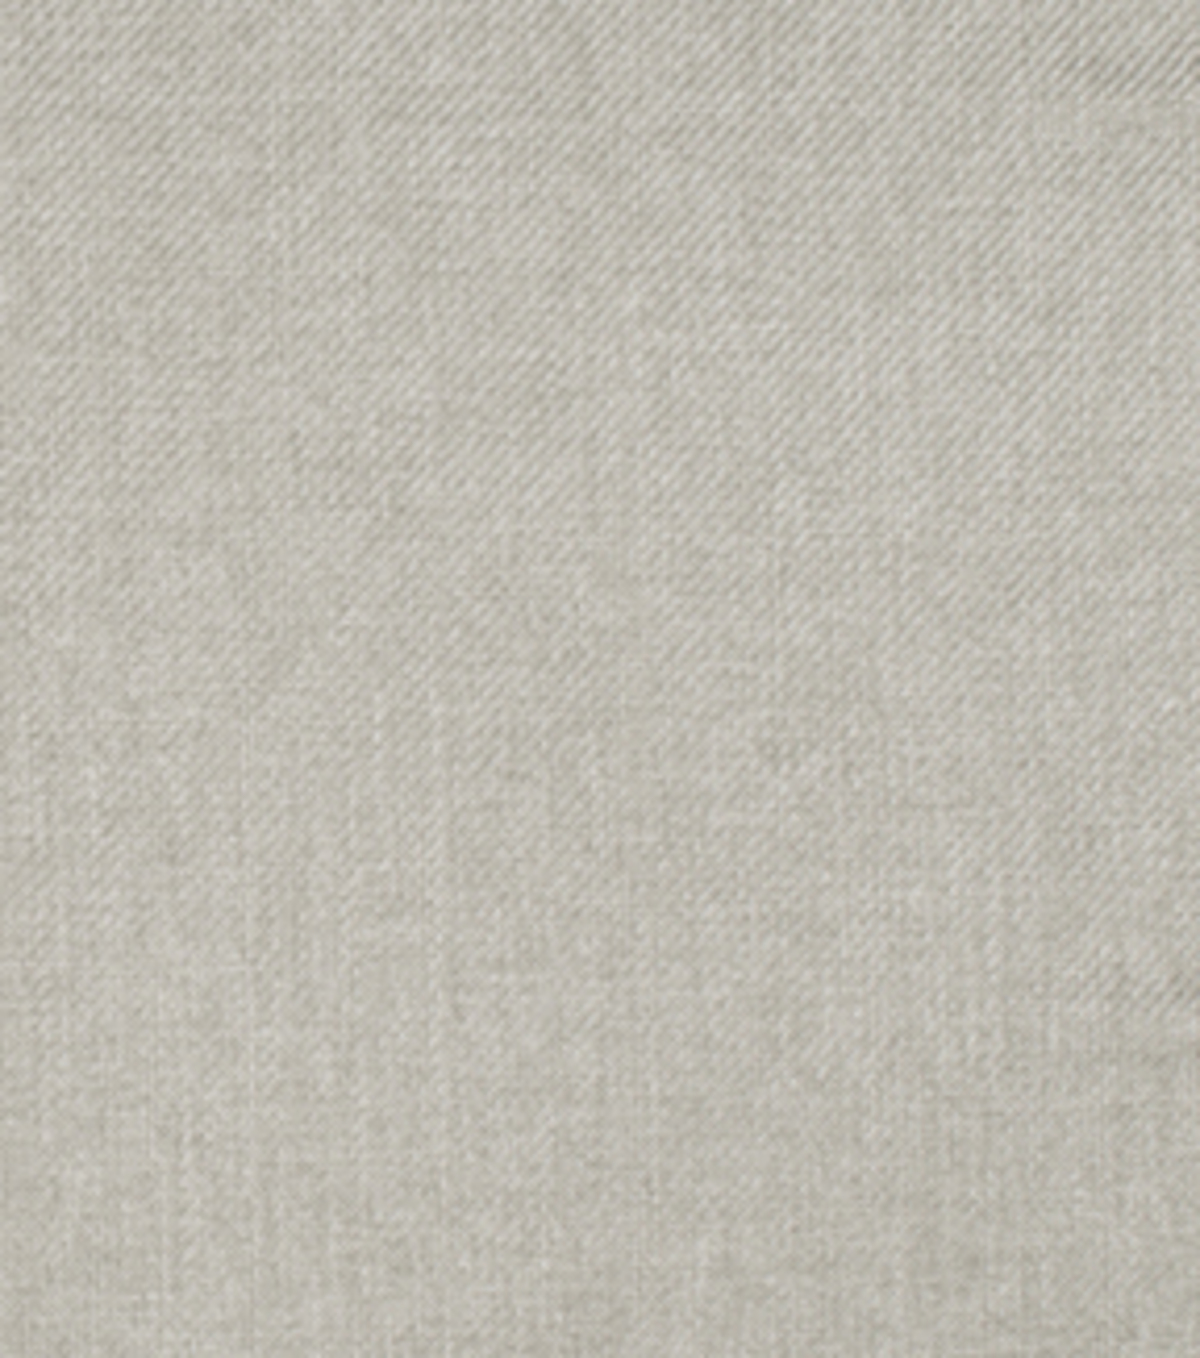 Home Decor 8\u0022x8\u0022 Fabric Swatch-Eaton Square Heston Chrome